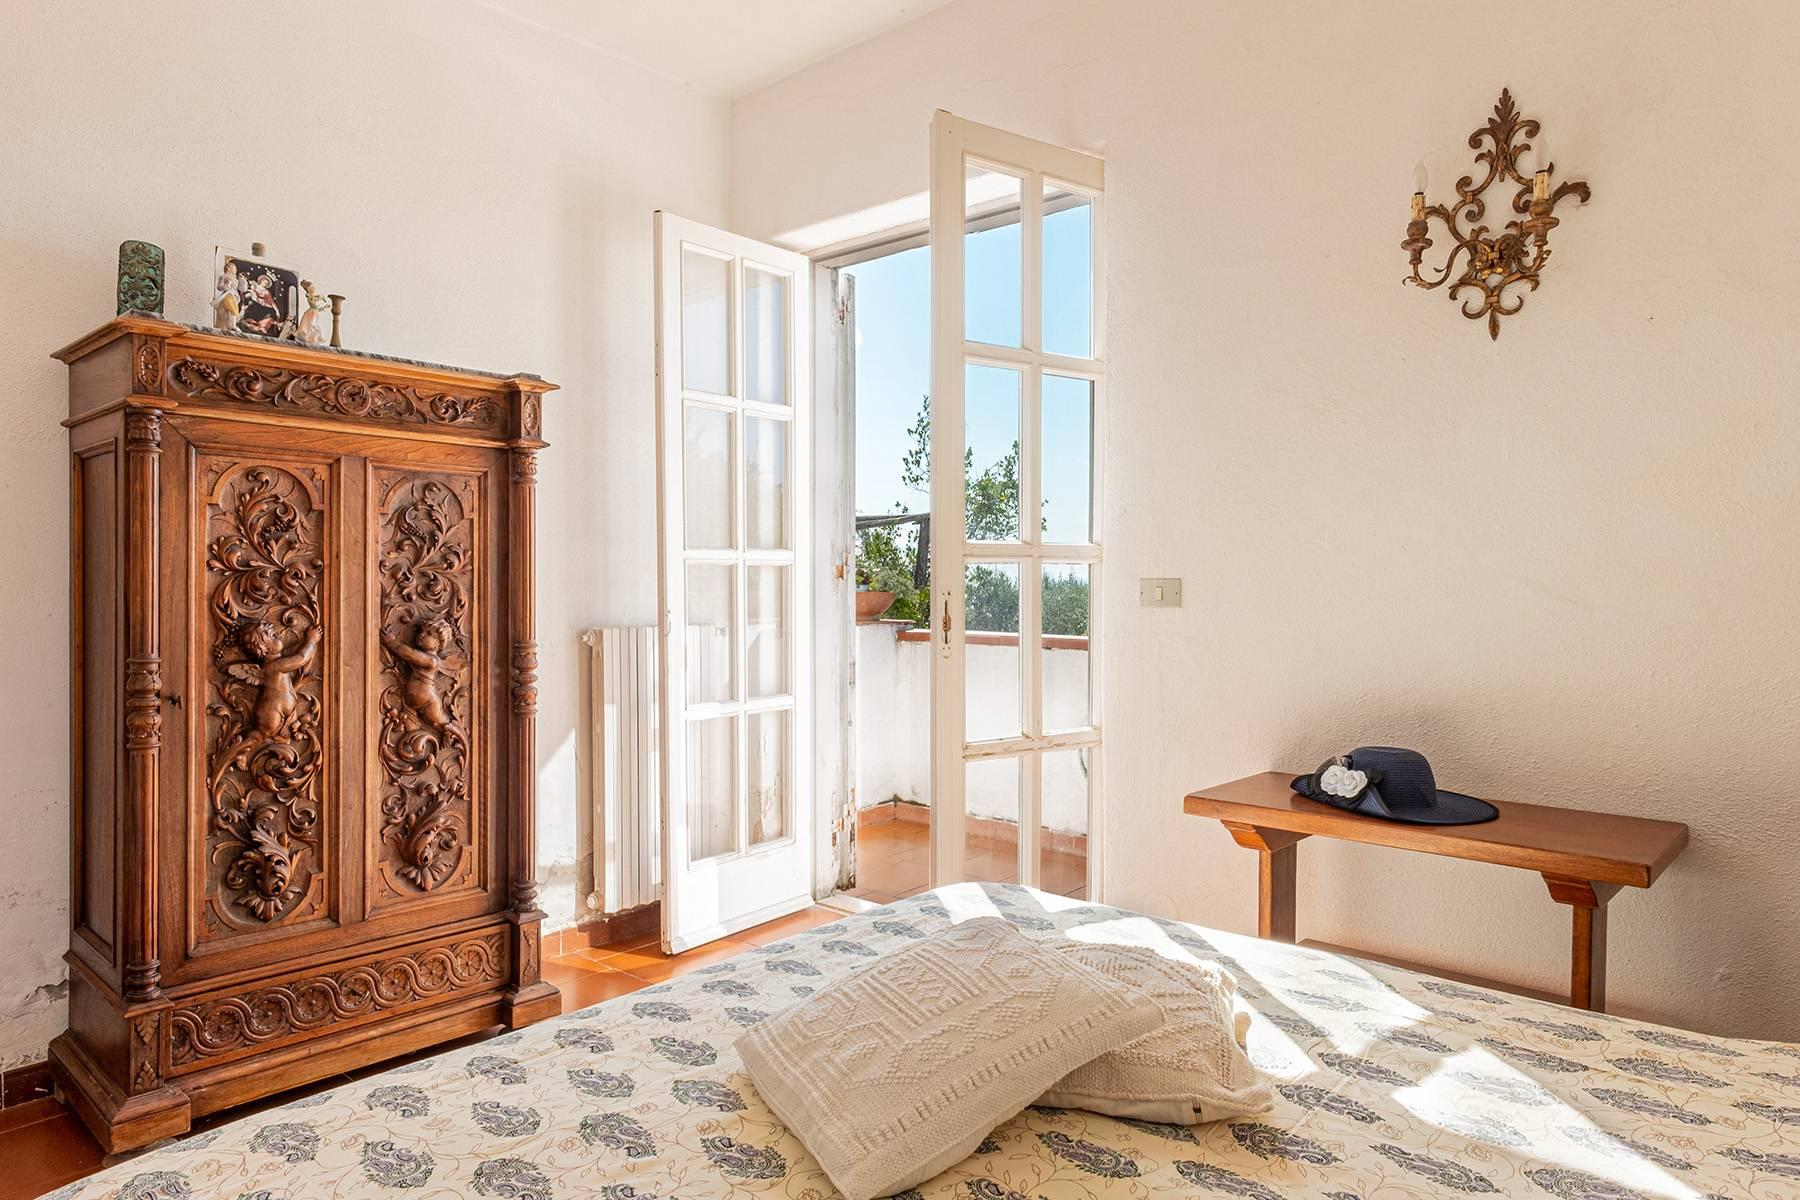 Charming villa with olive grove and swimming pool overlooking the sea - 12